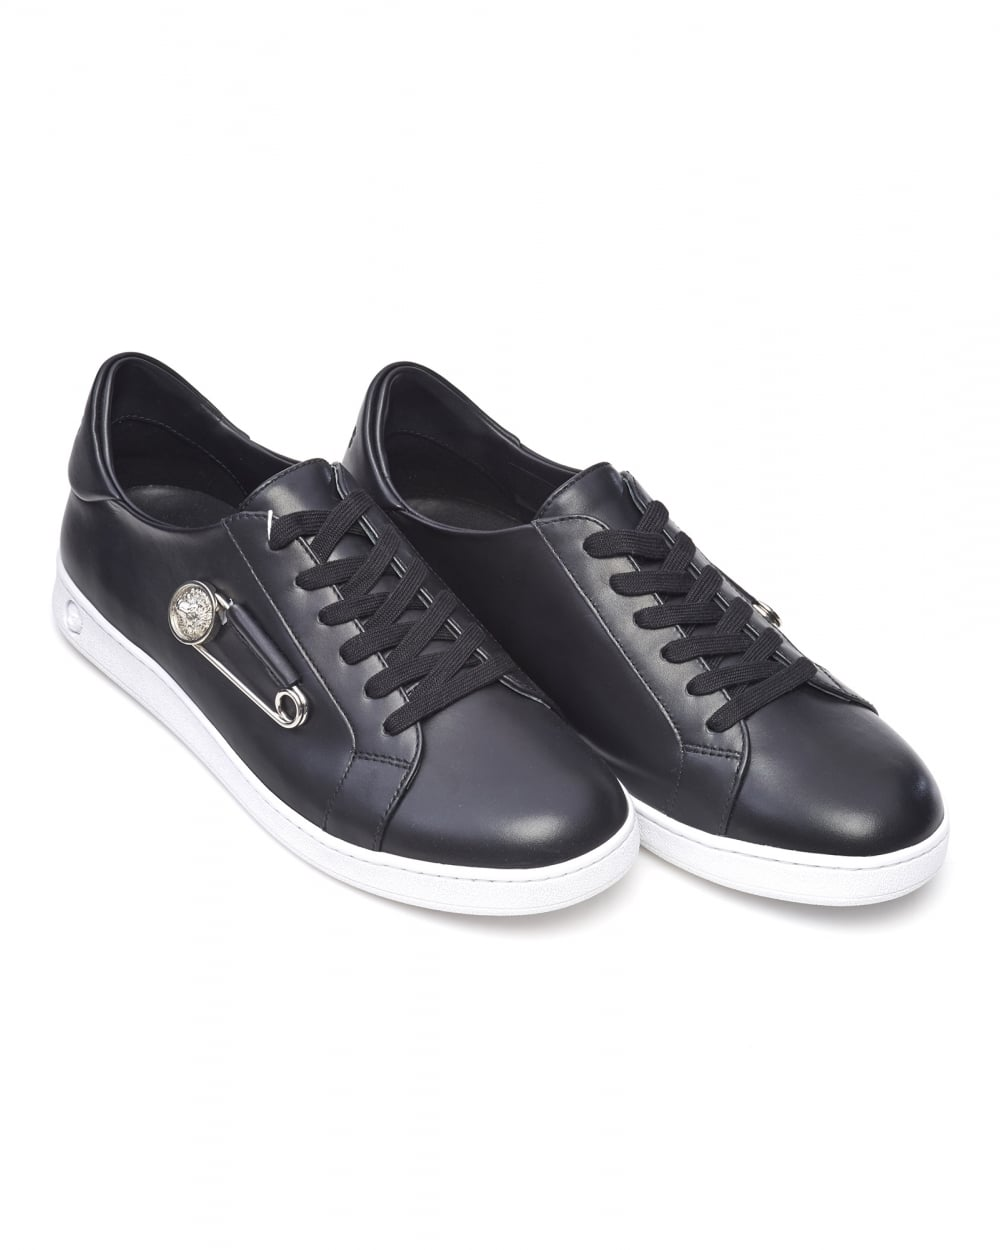 versace versus mens safety pin trainers black low top. Black Bedroom Furniture Sets. Home Design Ideas